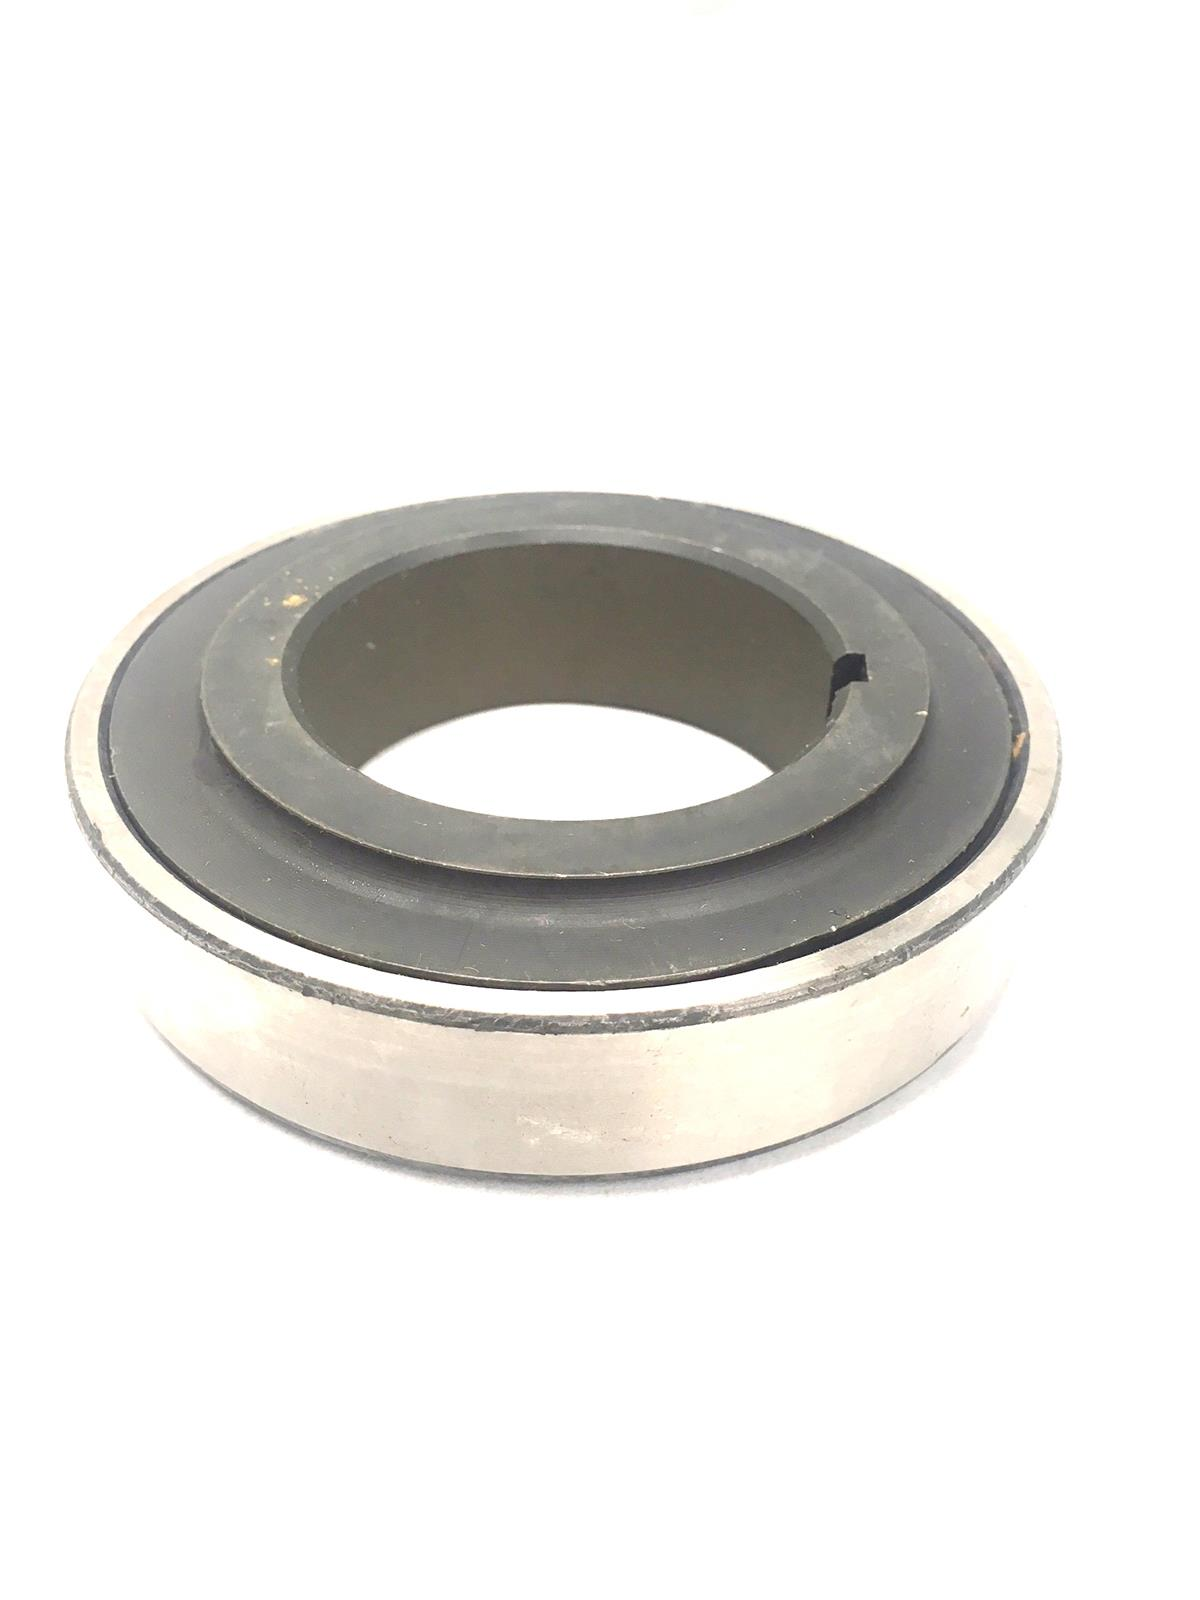 M35-713 | M35-713  Tandem Axle Trunion Tapered Bearing (3).JPG